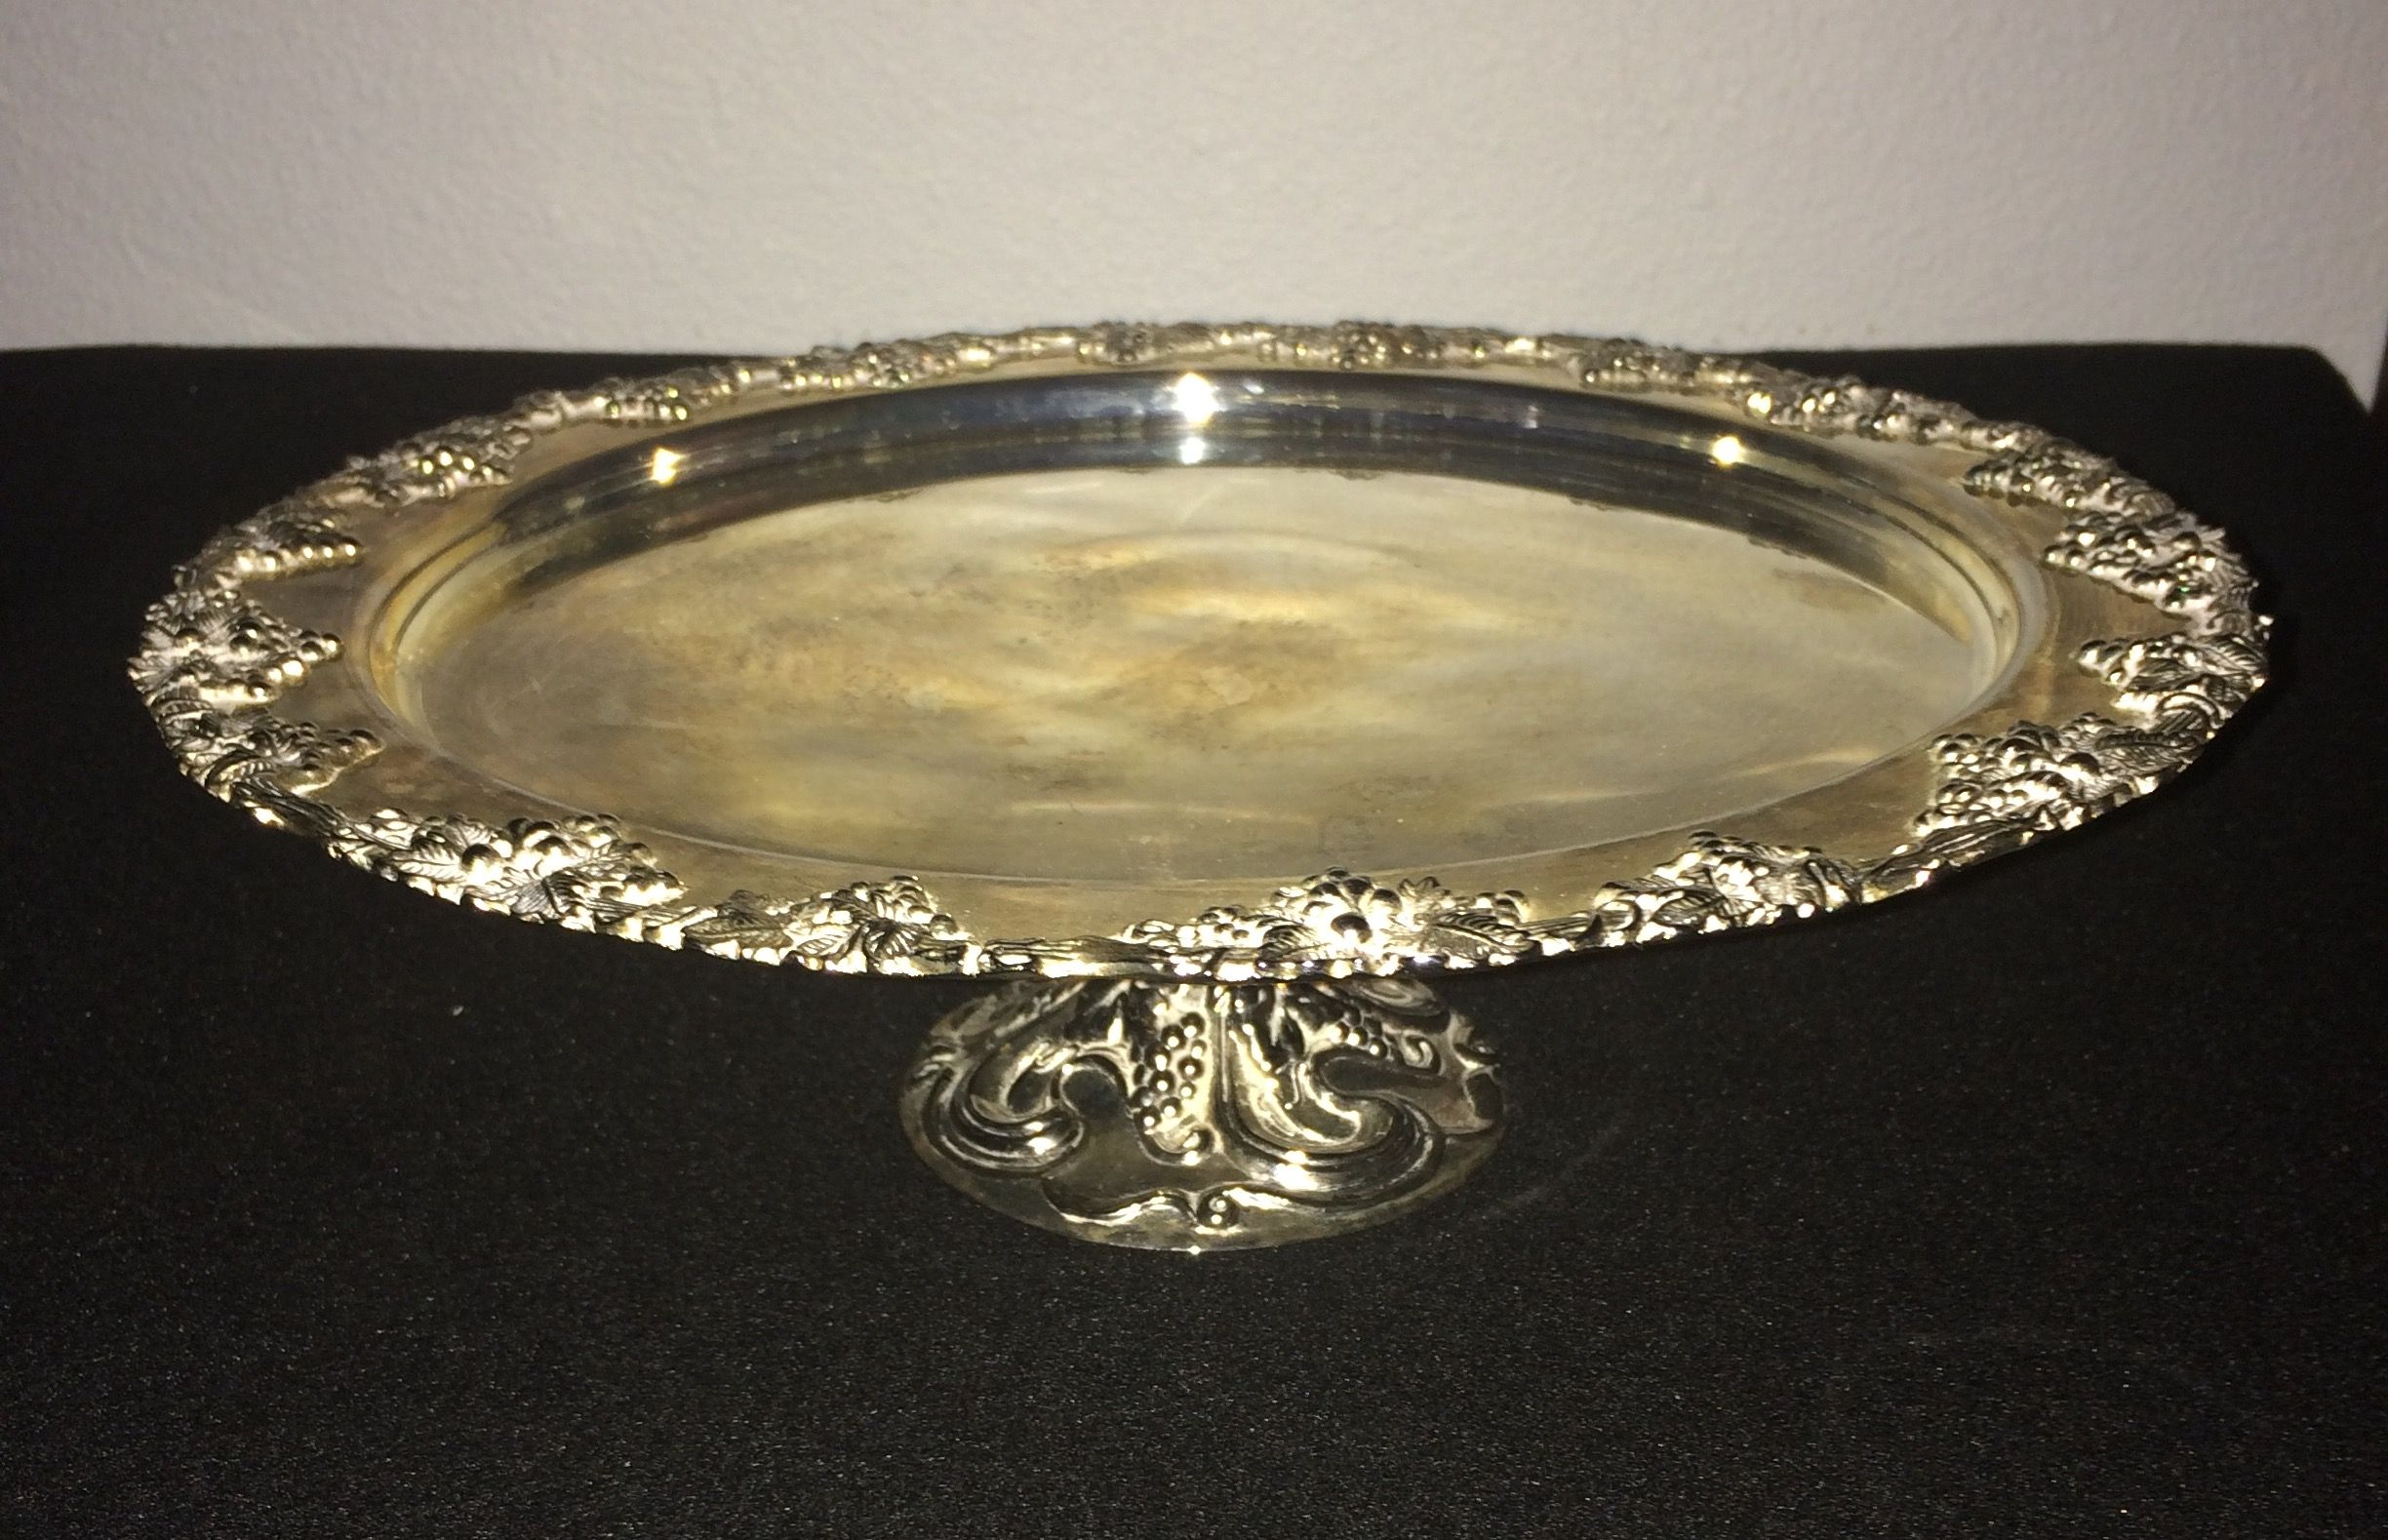 Godinger silver plated Cake stand S28 HB4